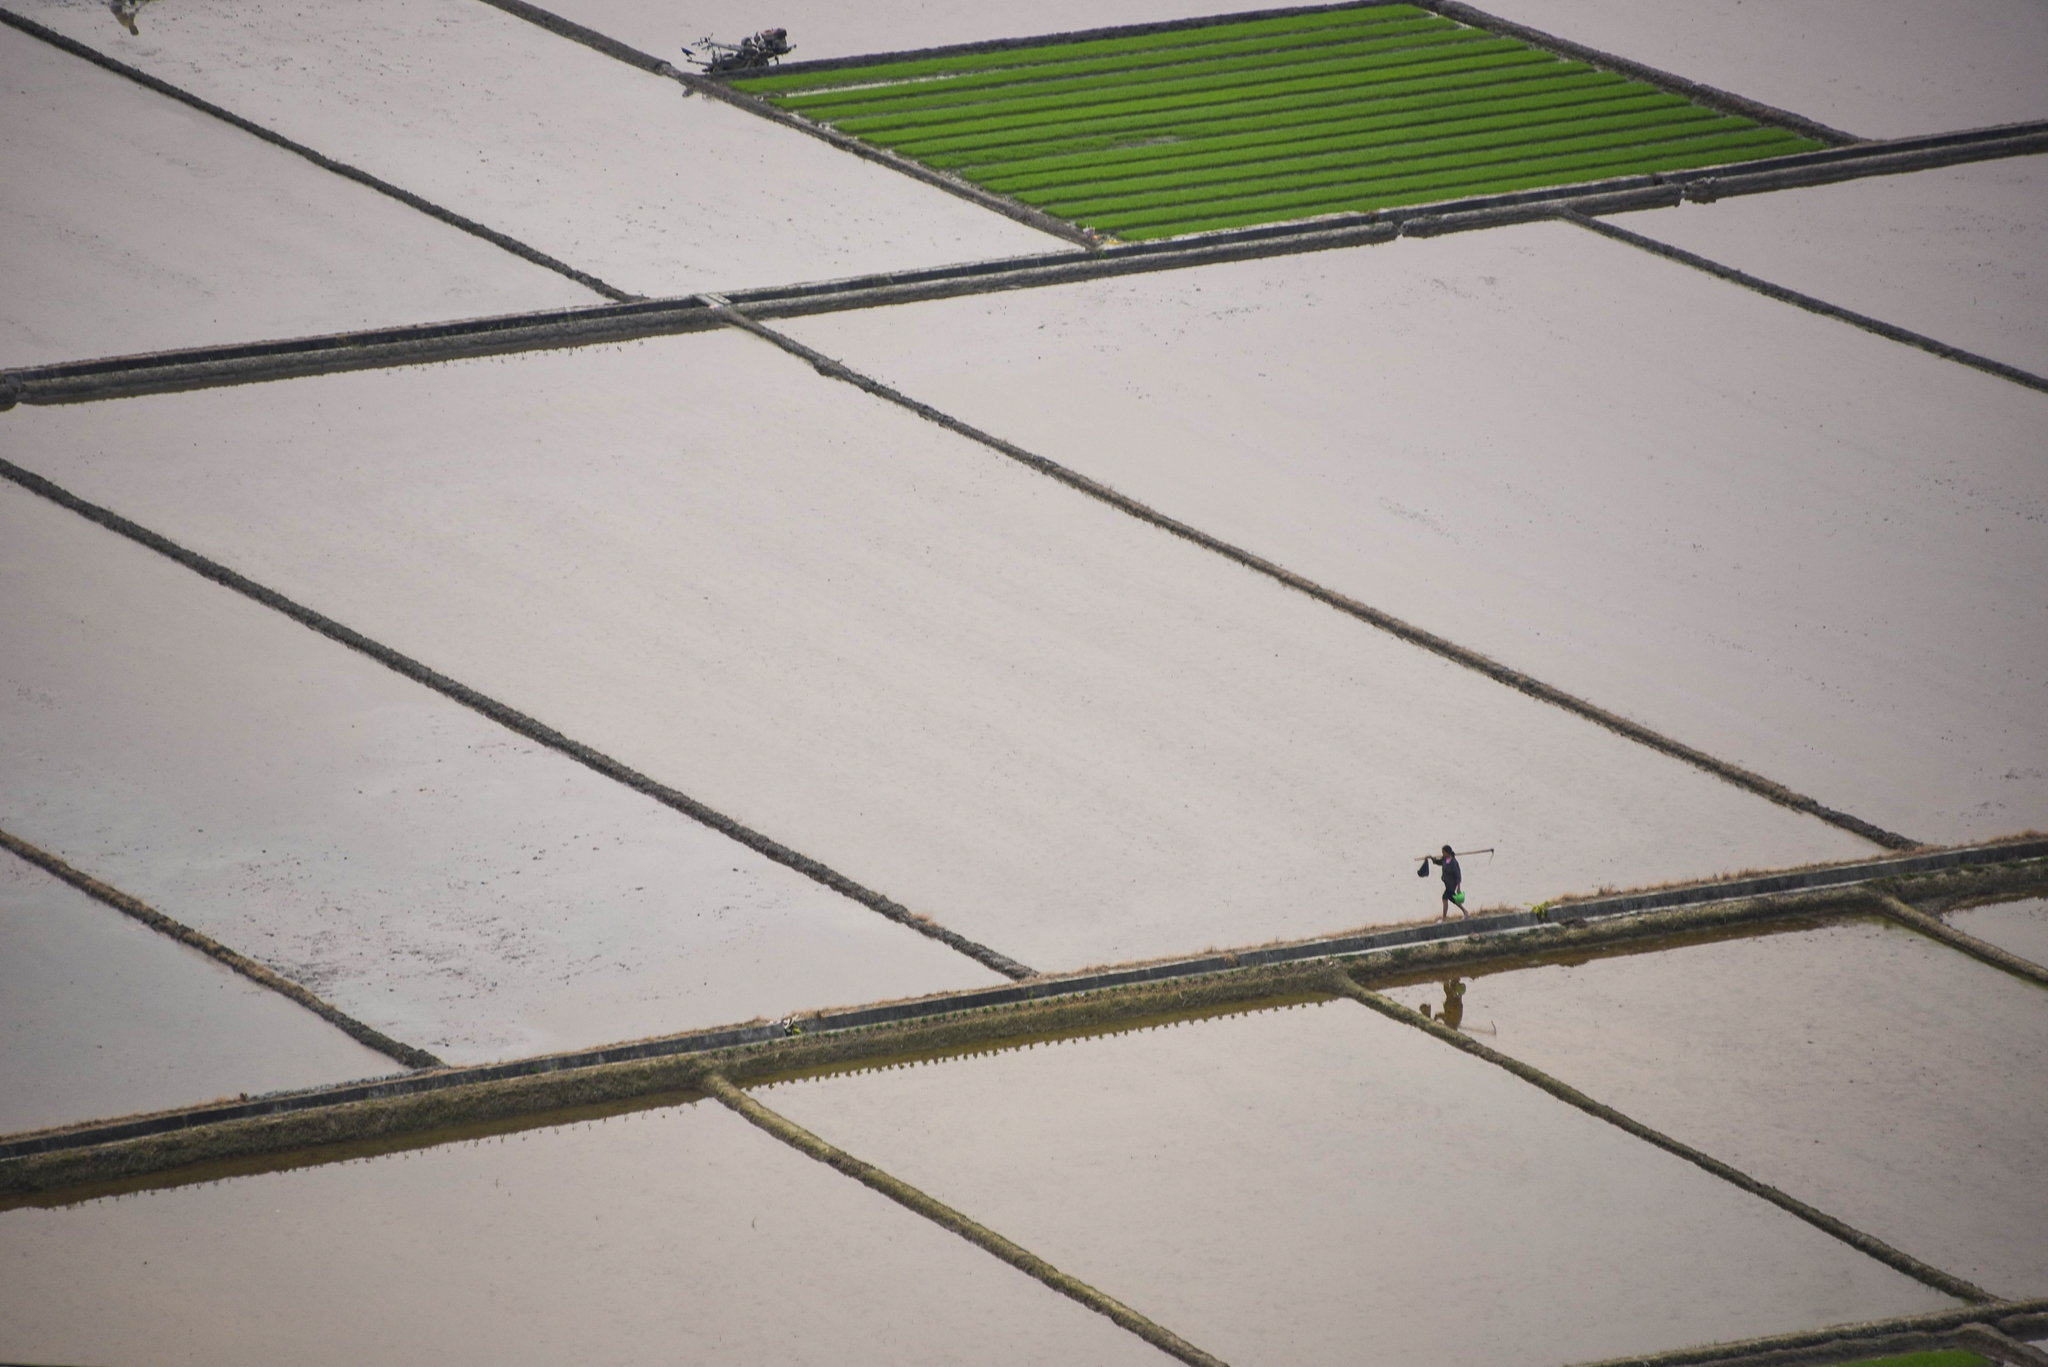 A farmer walks through rice fields in Qiantang village of Suichuan county...A farmer walks through rice fields in Qiantang village of Suichuan county, Jiangxi Province, China, April 6, 2016. Picture taken April 6, 2016.  REUTERS/China Daily ATTENTION EDITORS - THIS PICTURE WAS PROVIDED BY A THIRD PARTY. THIS PICTURE IS DISTRIBUTED EXACTLY AS RECEIVED BY REUTERS, AS A SERVICE TO CLIENTS. CHINA OUT. NO COMMERCIAL OR EDITORIAL SALES IN CHINA.